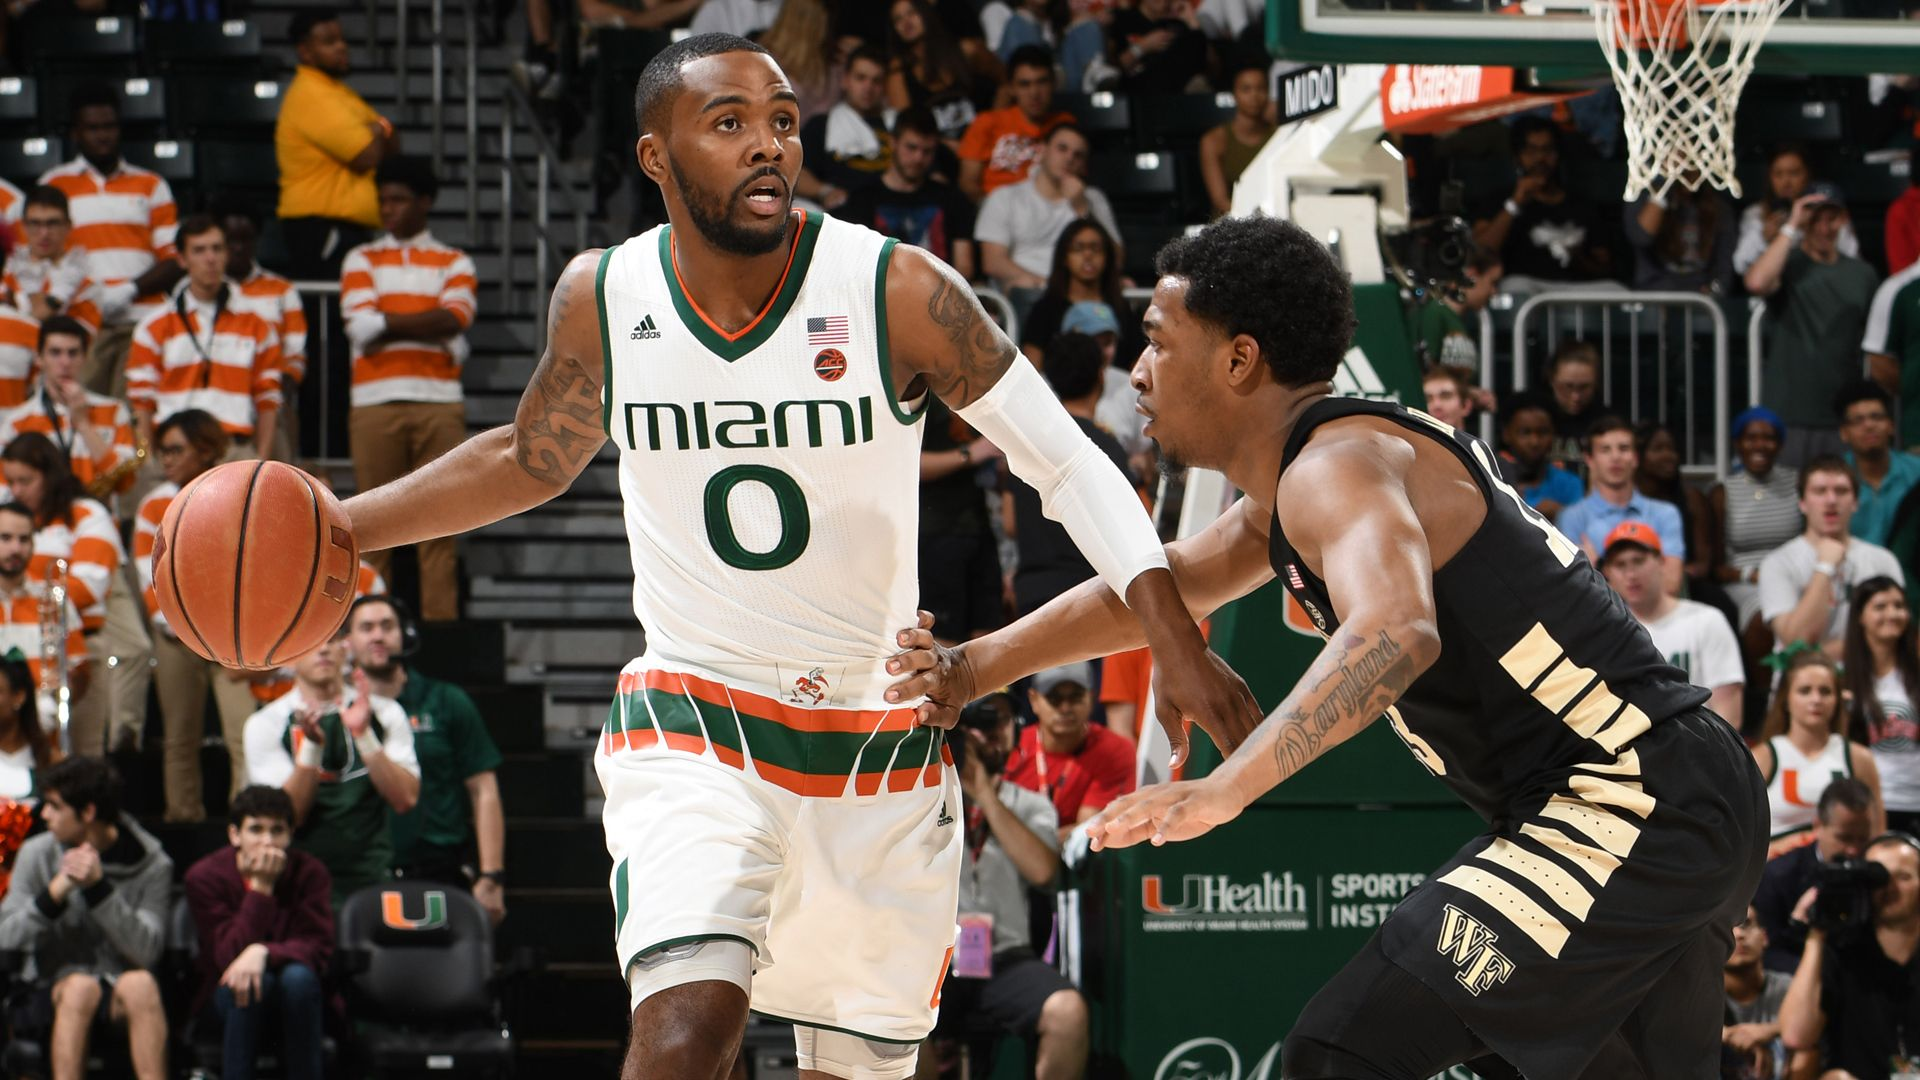 Canes Shoot Past Wake Forest, 87-81